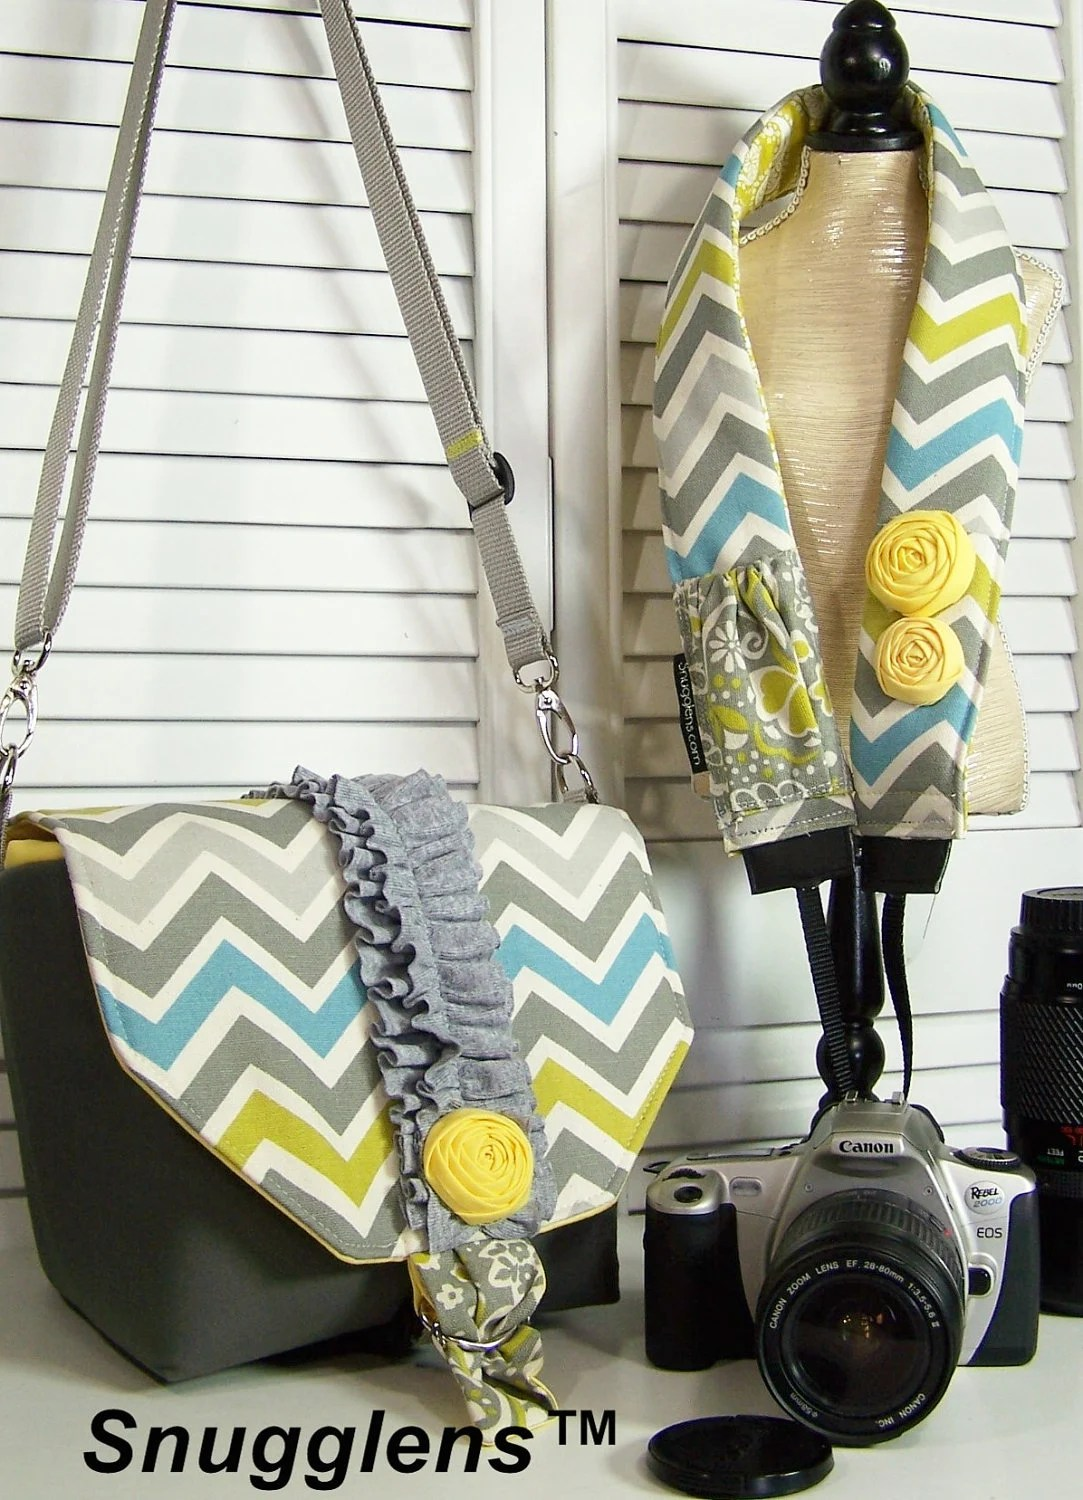 PreOrder Camera Bag  Purse insert MINI gray-yellow-chevron-ruffles and rosette-Includes camera strap w/lens cap pkt-Snugglens